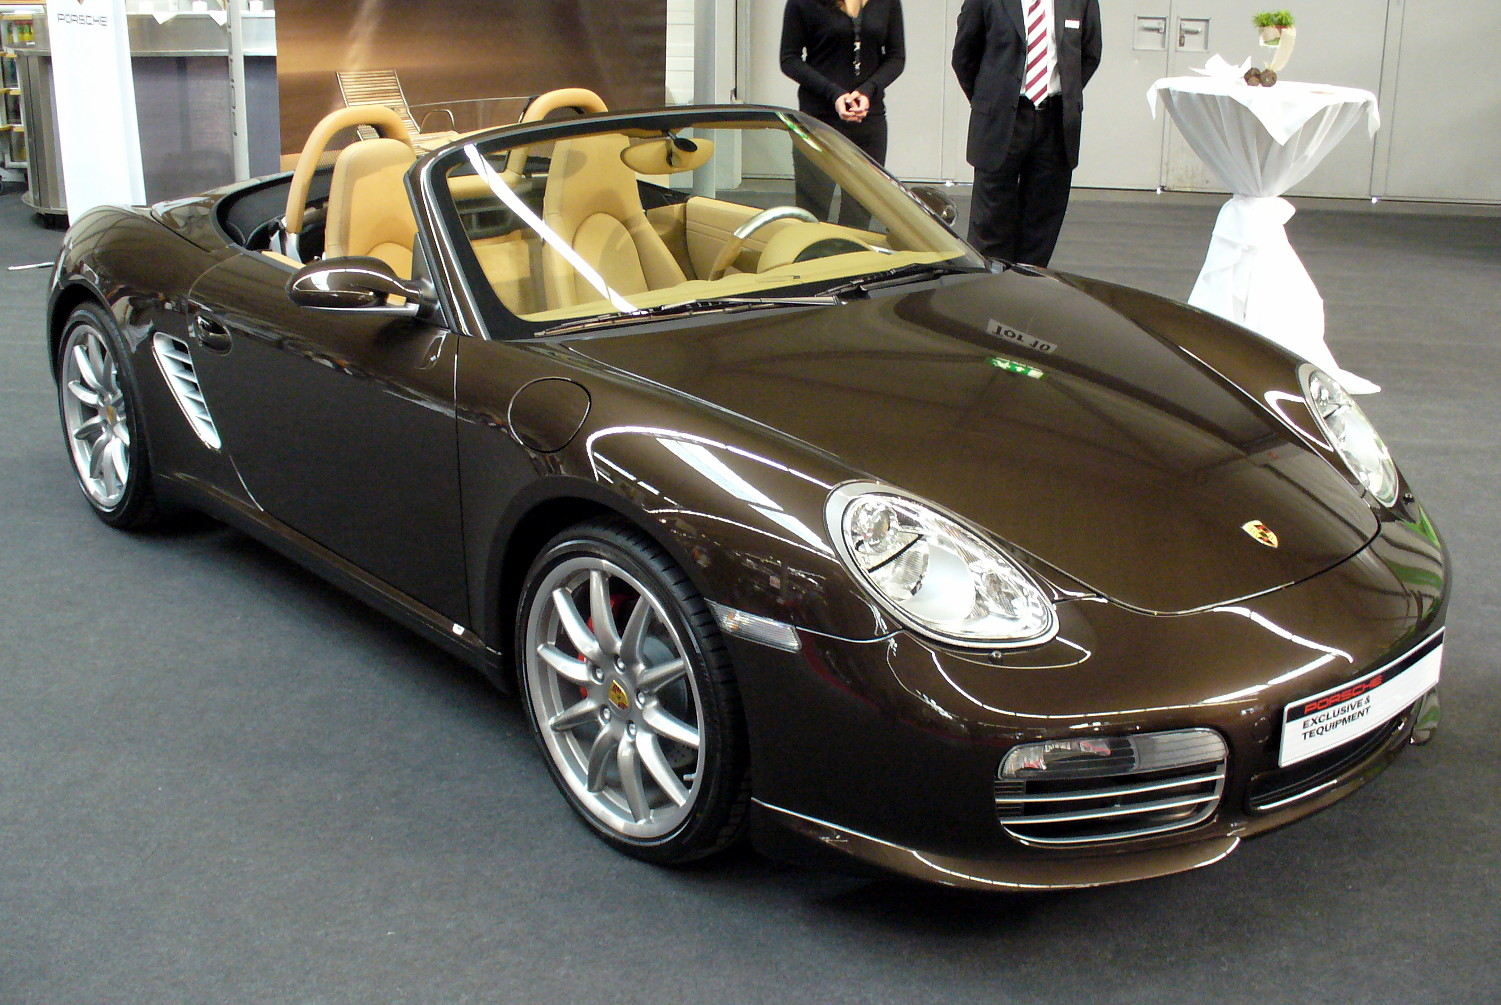 Porsche boxter photo - 2